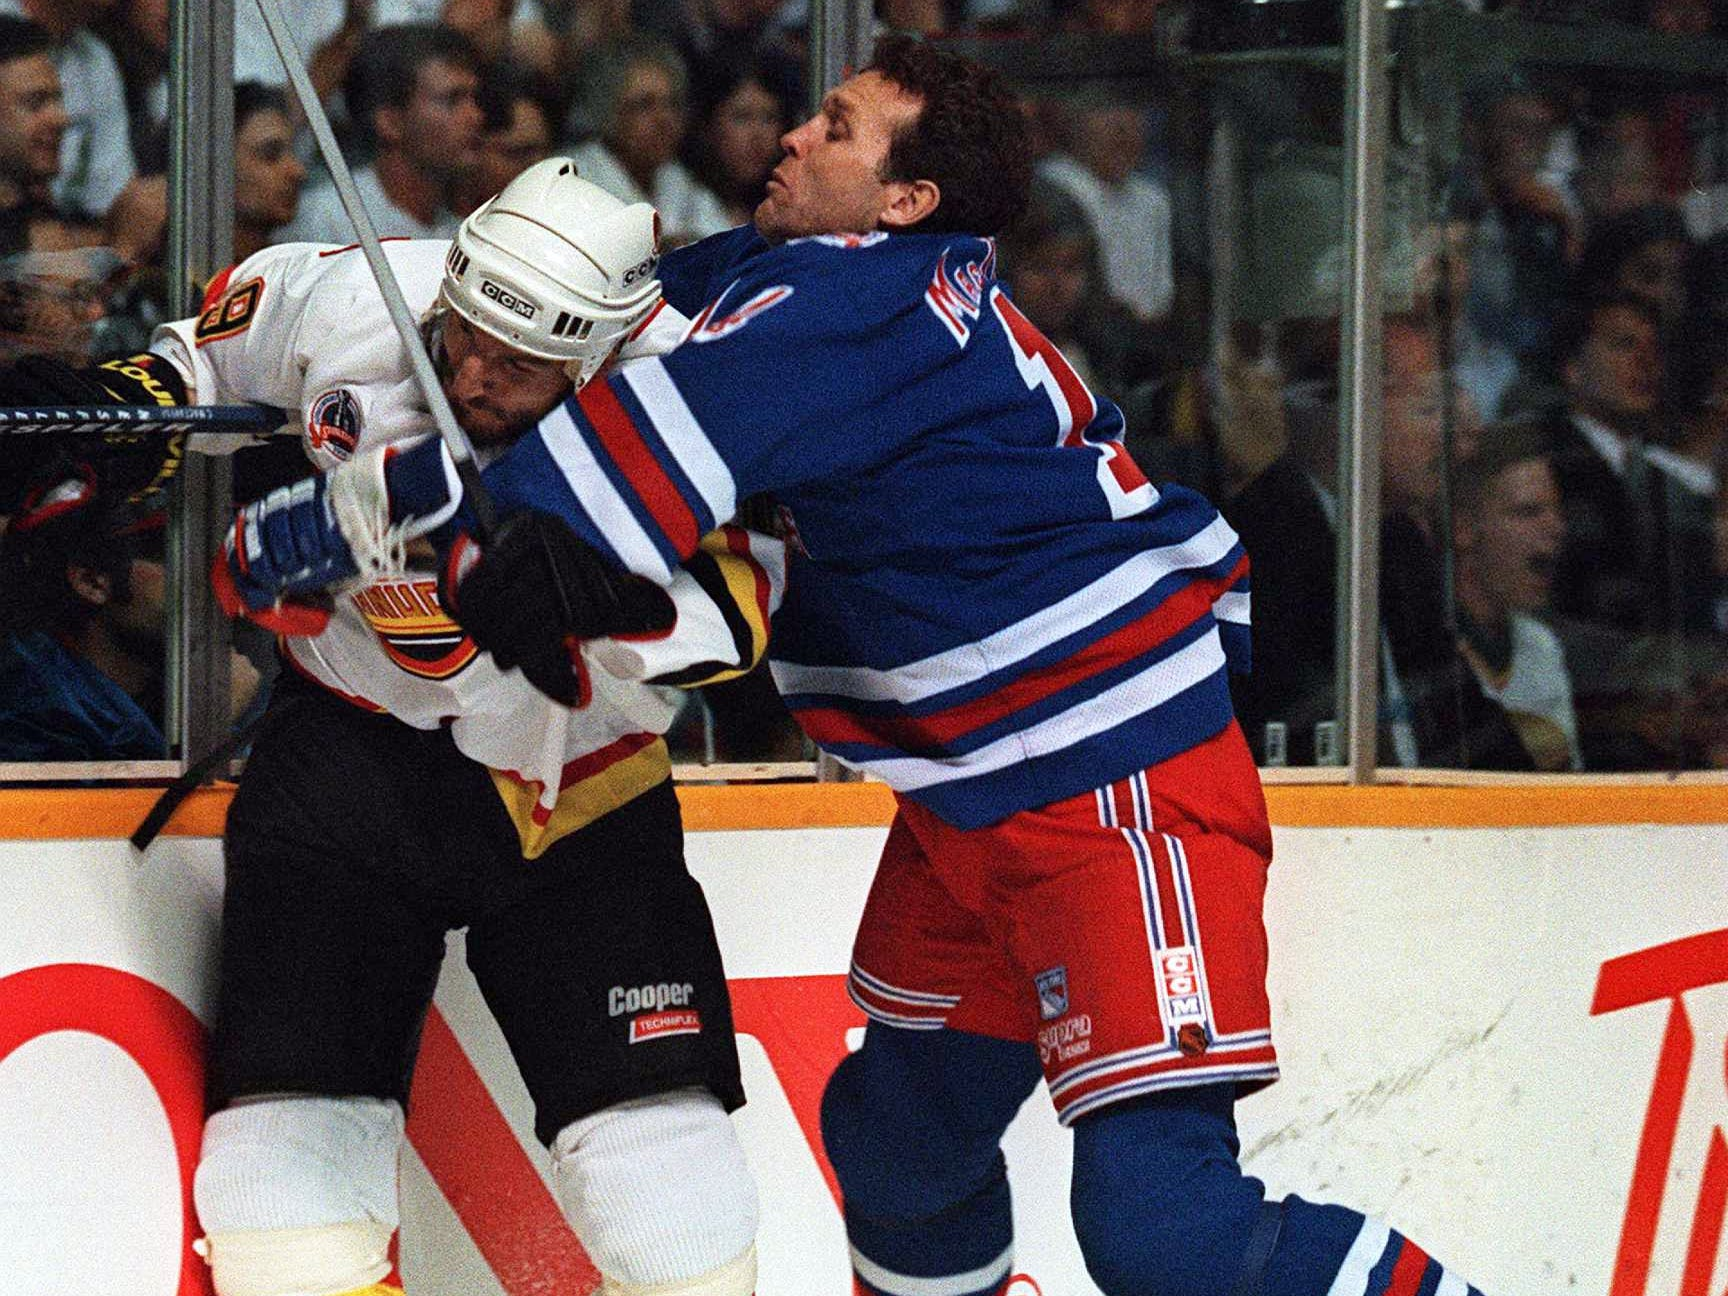 7 Jun 1994: RANGERS FORWARD CRAIG MACTAVISH PUTS A HIT ON THE CANUCK''S TIM HUNTER DURING GAME FOUR OF THE STANLEY CUP FINALS IN VANCOUVER, BRITISH COLUMBIA. THE RANGERS WON THE GAME, 4-2, AND HEAD BACK TO NEW YORK FOR GAME FIVE LEADING THE SERIES, 3-1.